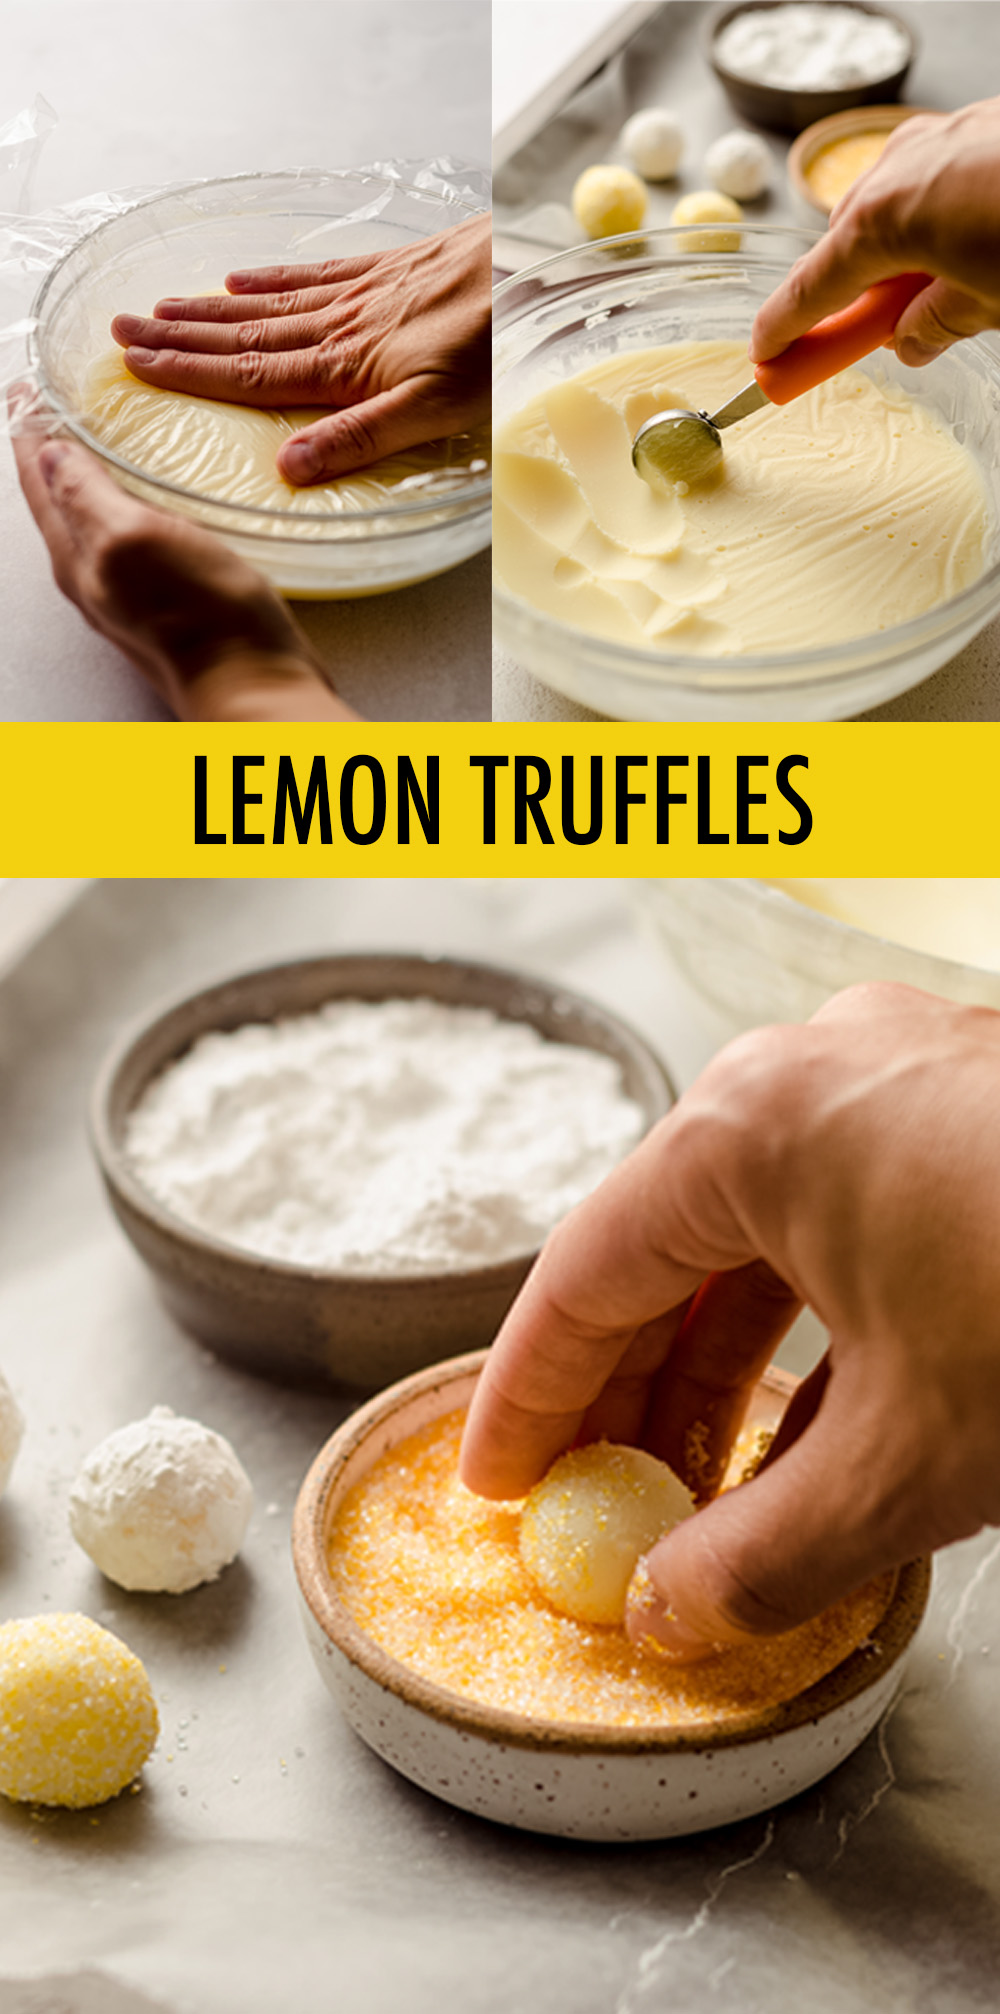 Smooth and creamy truffles full of lemon flavor and rolled in bright and sunny sprinkles. Easy to follow instructions will make you feel like a candy-making expert!